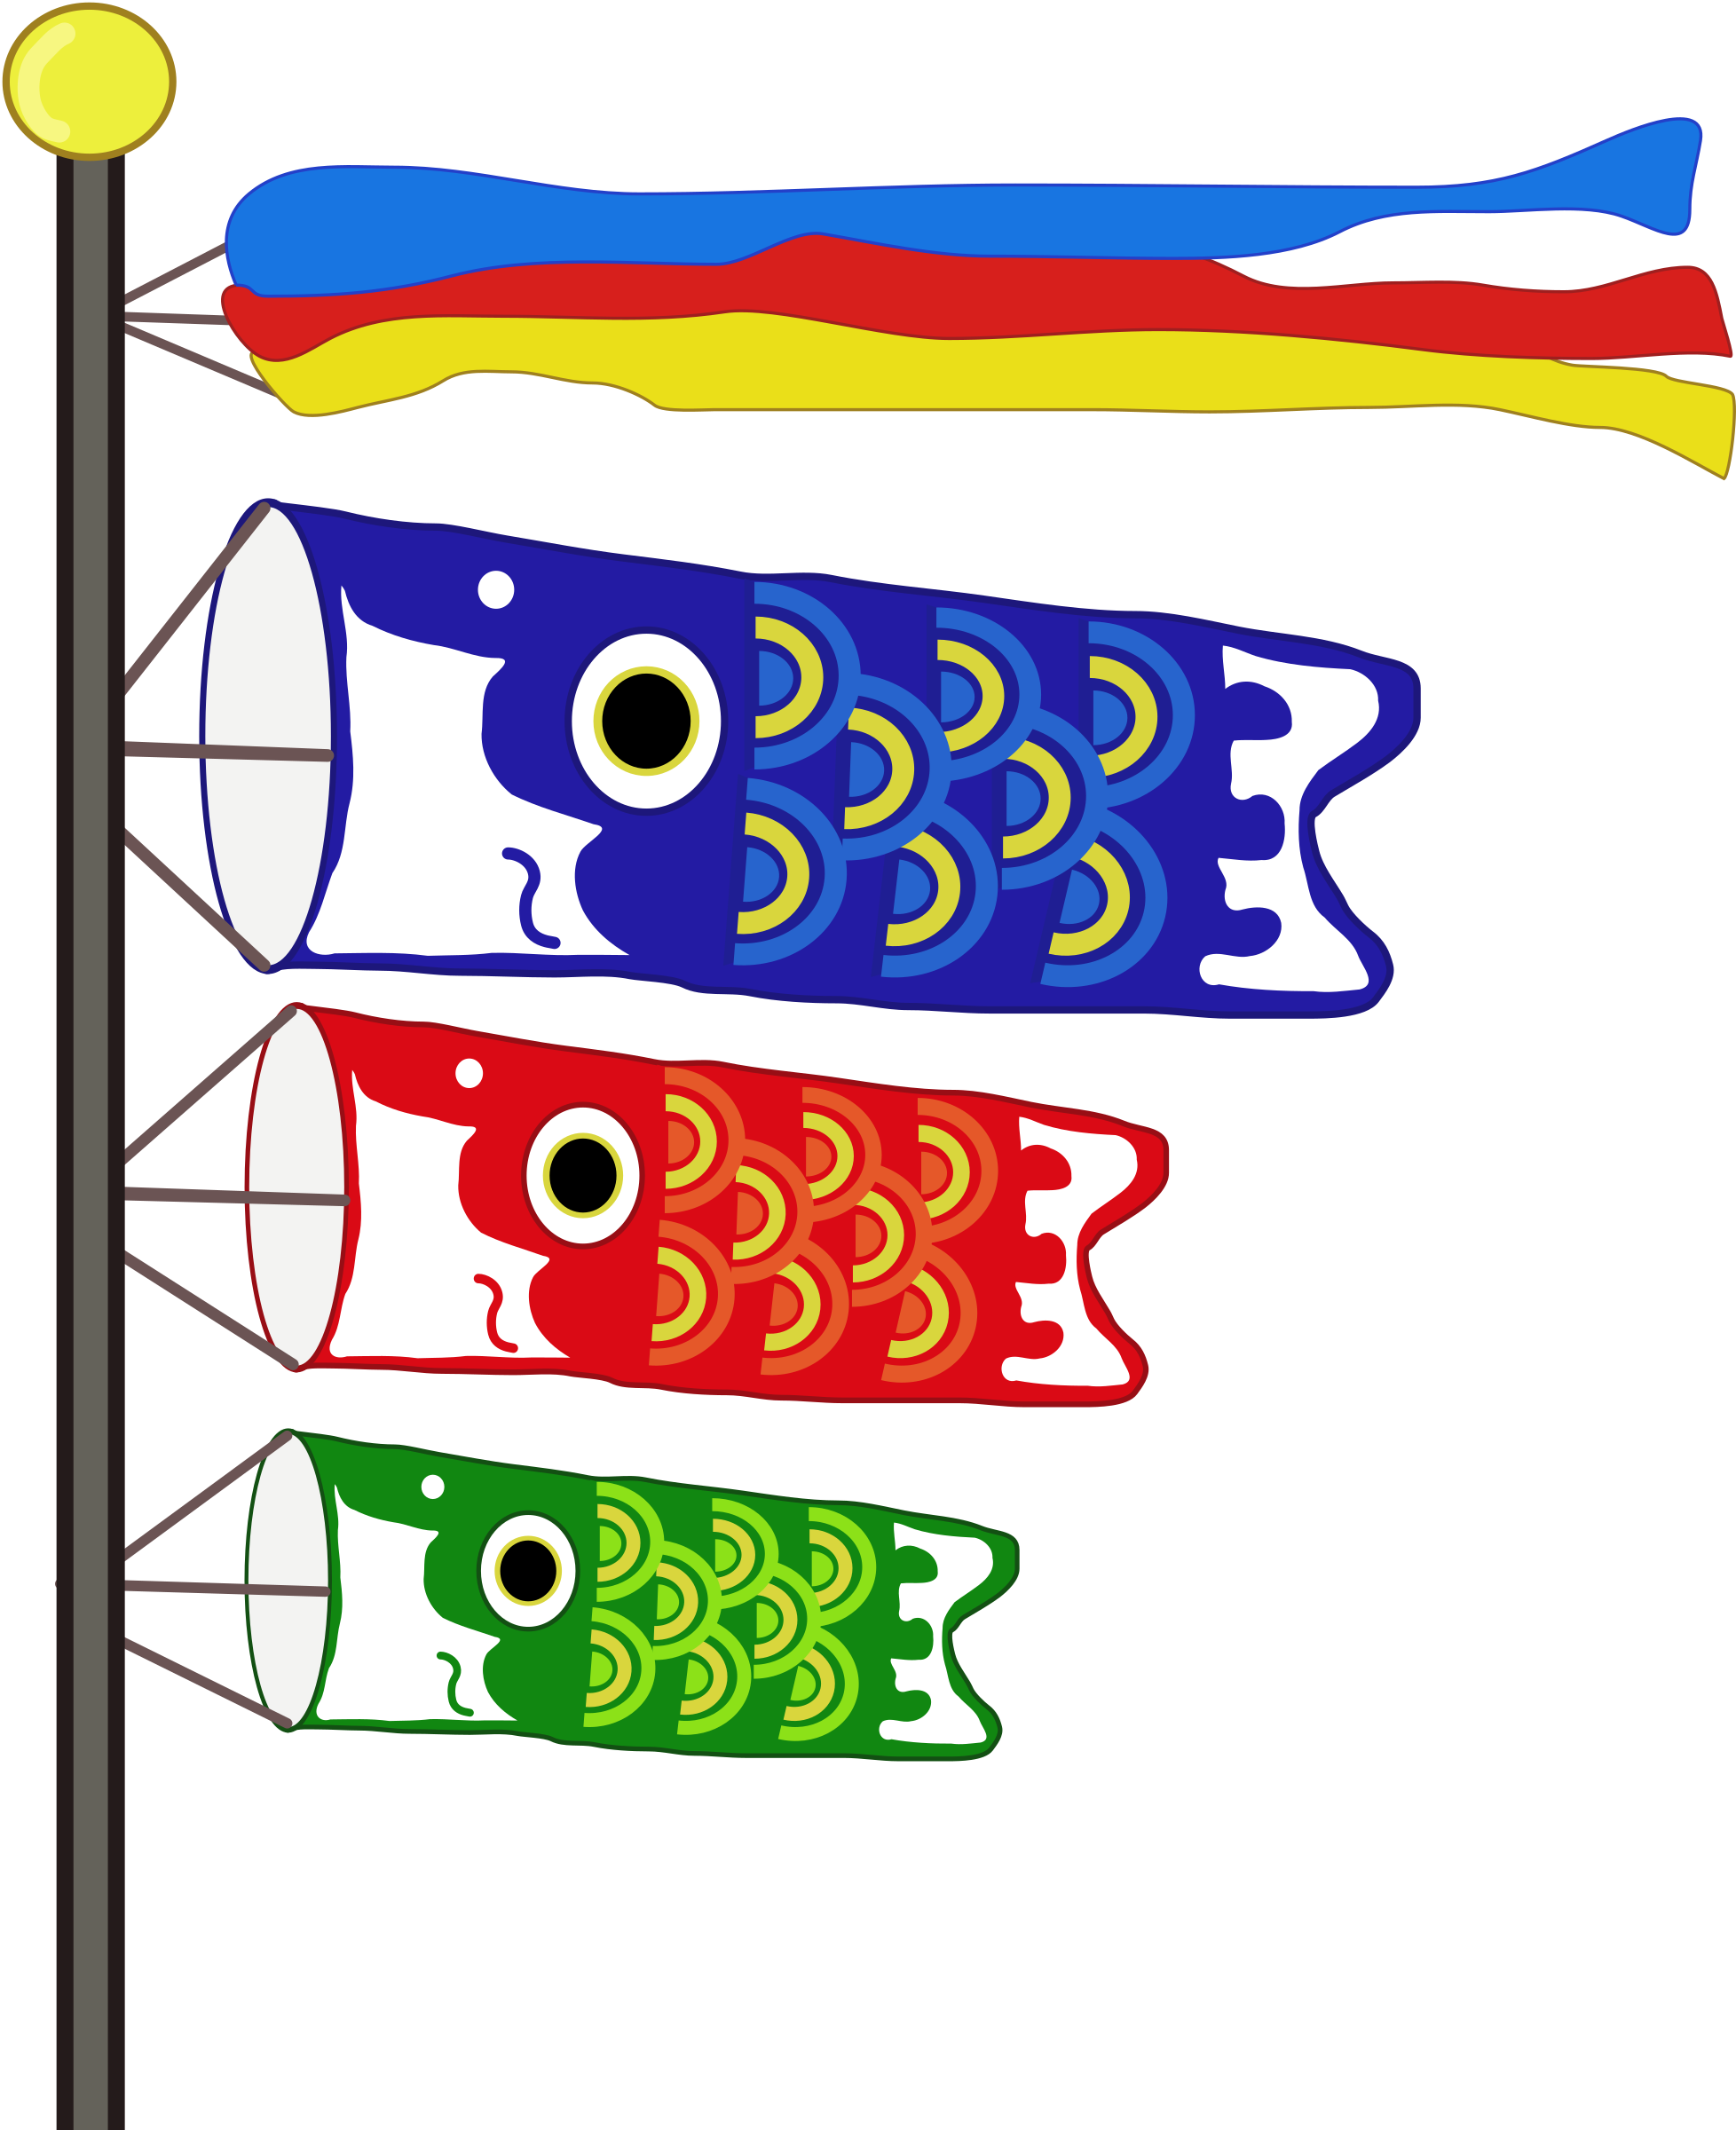 Koinobori - Carp Streamers by j4p4n